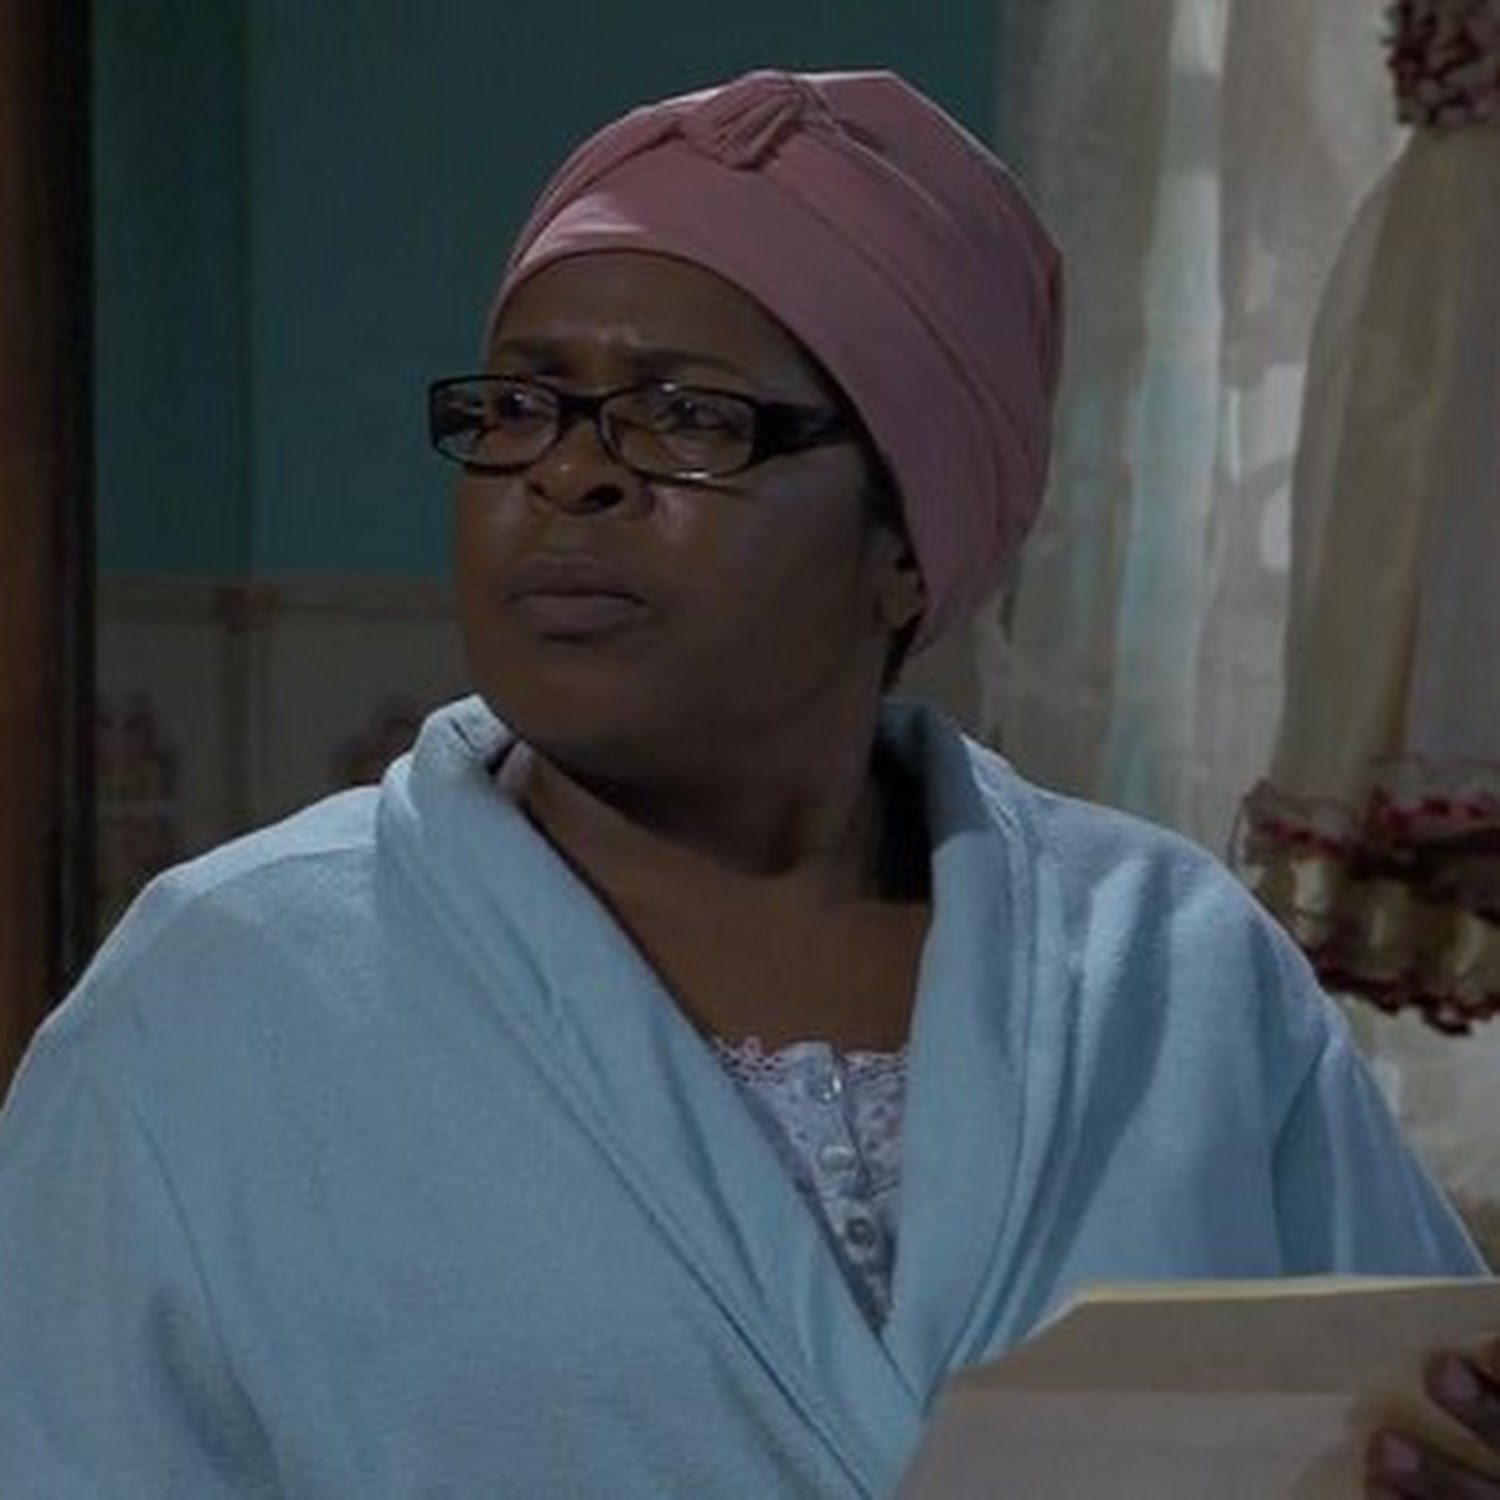 Skeem Saam' halts production after crew member has direct contact with Covid-19 patient